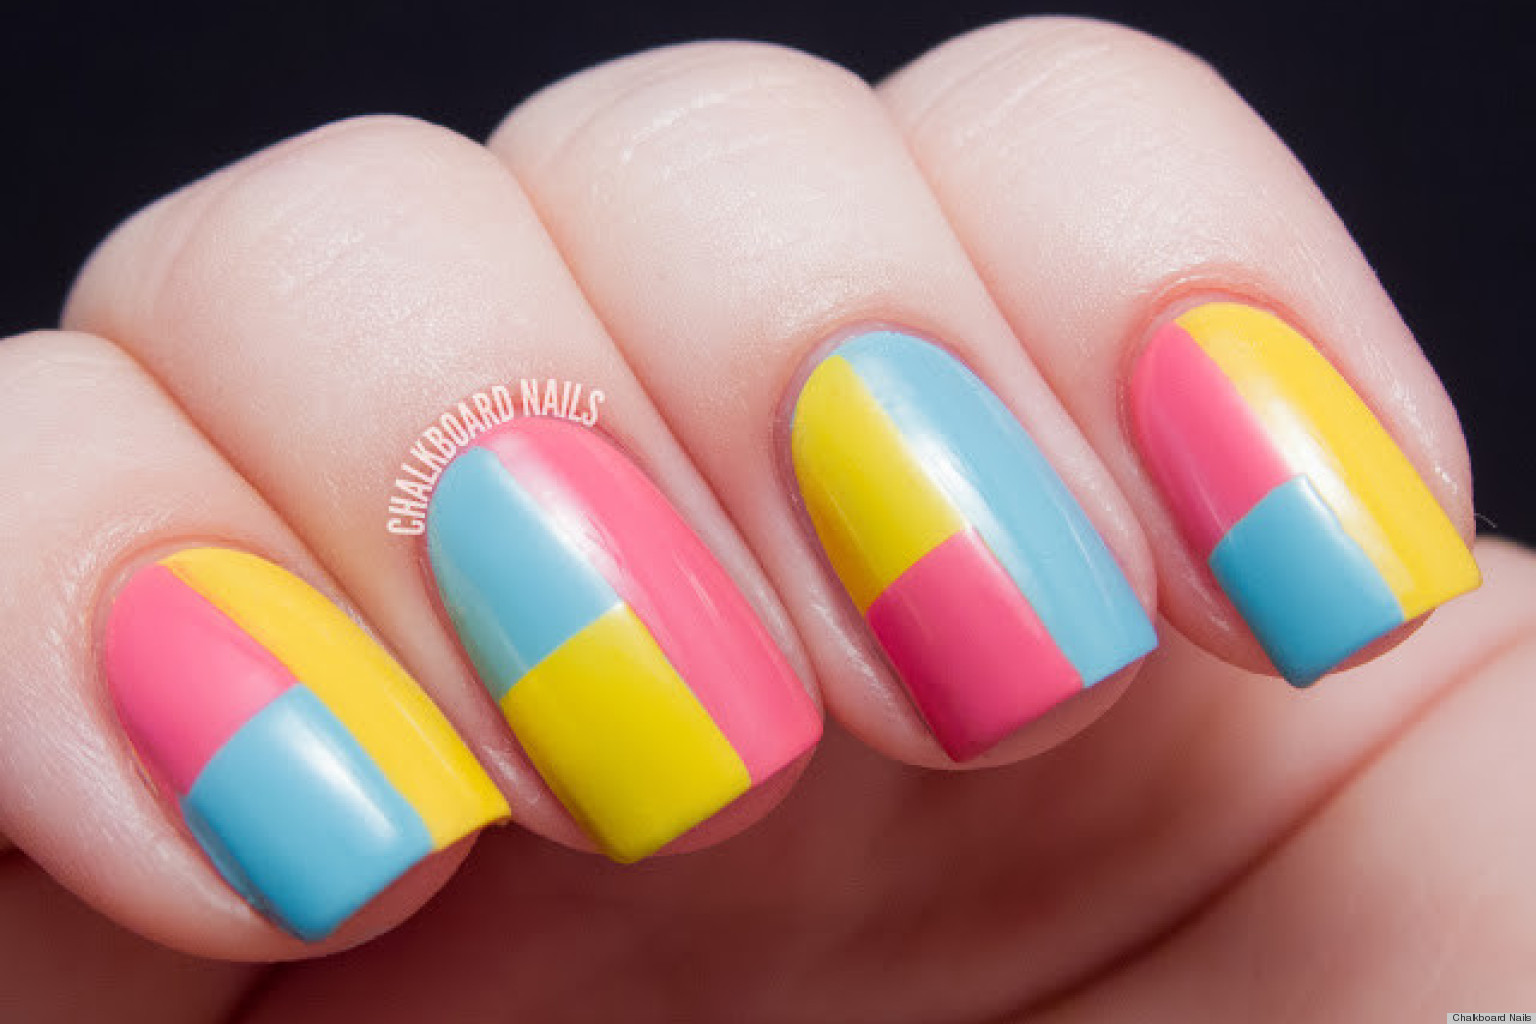 Best ideas about DIY Nail Art . Save or Pin DIY Nail Art A Colorblock Manicure With Mod Appeal Now.